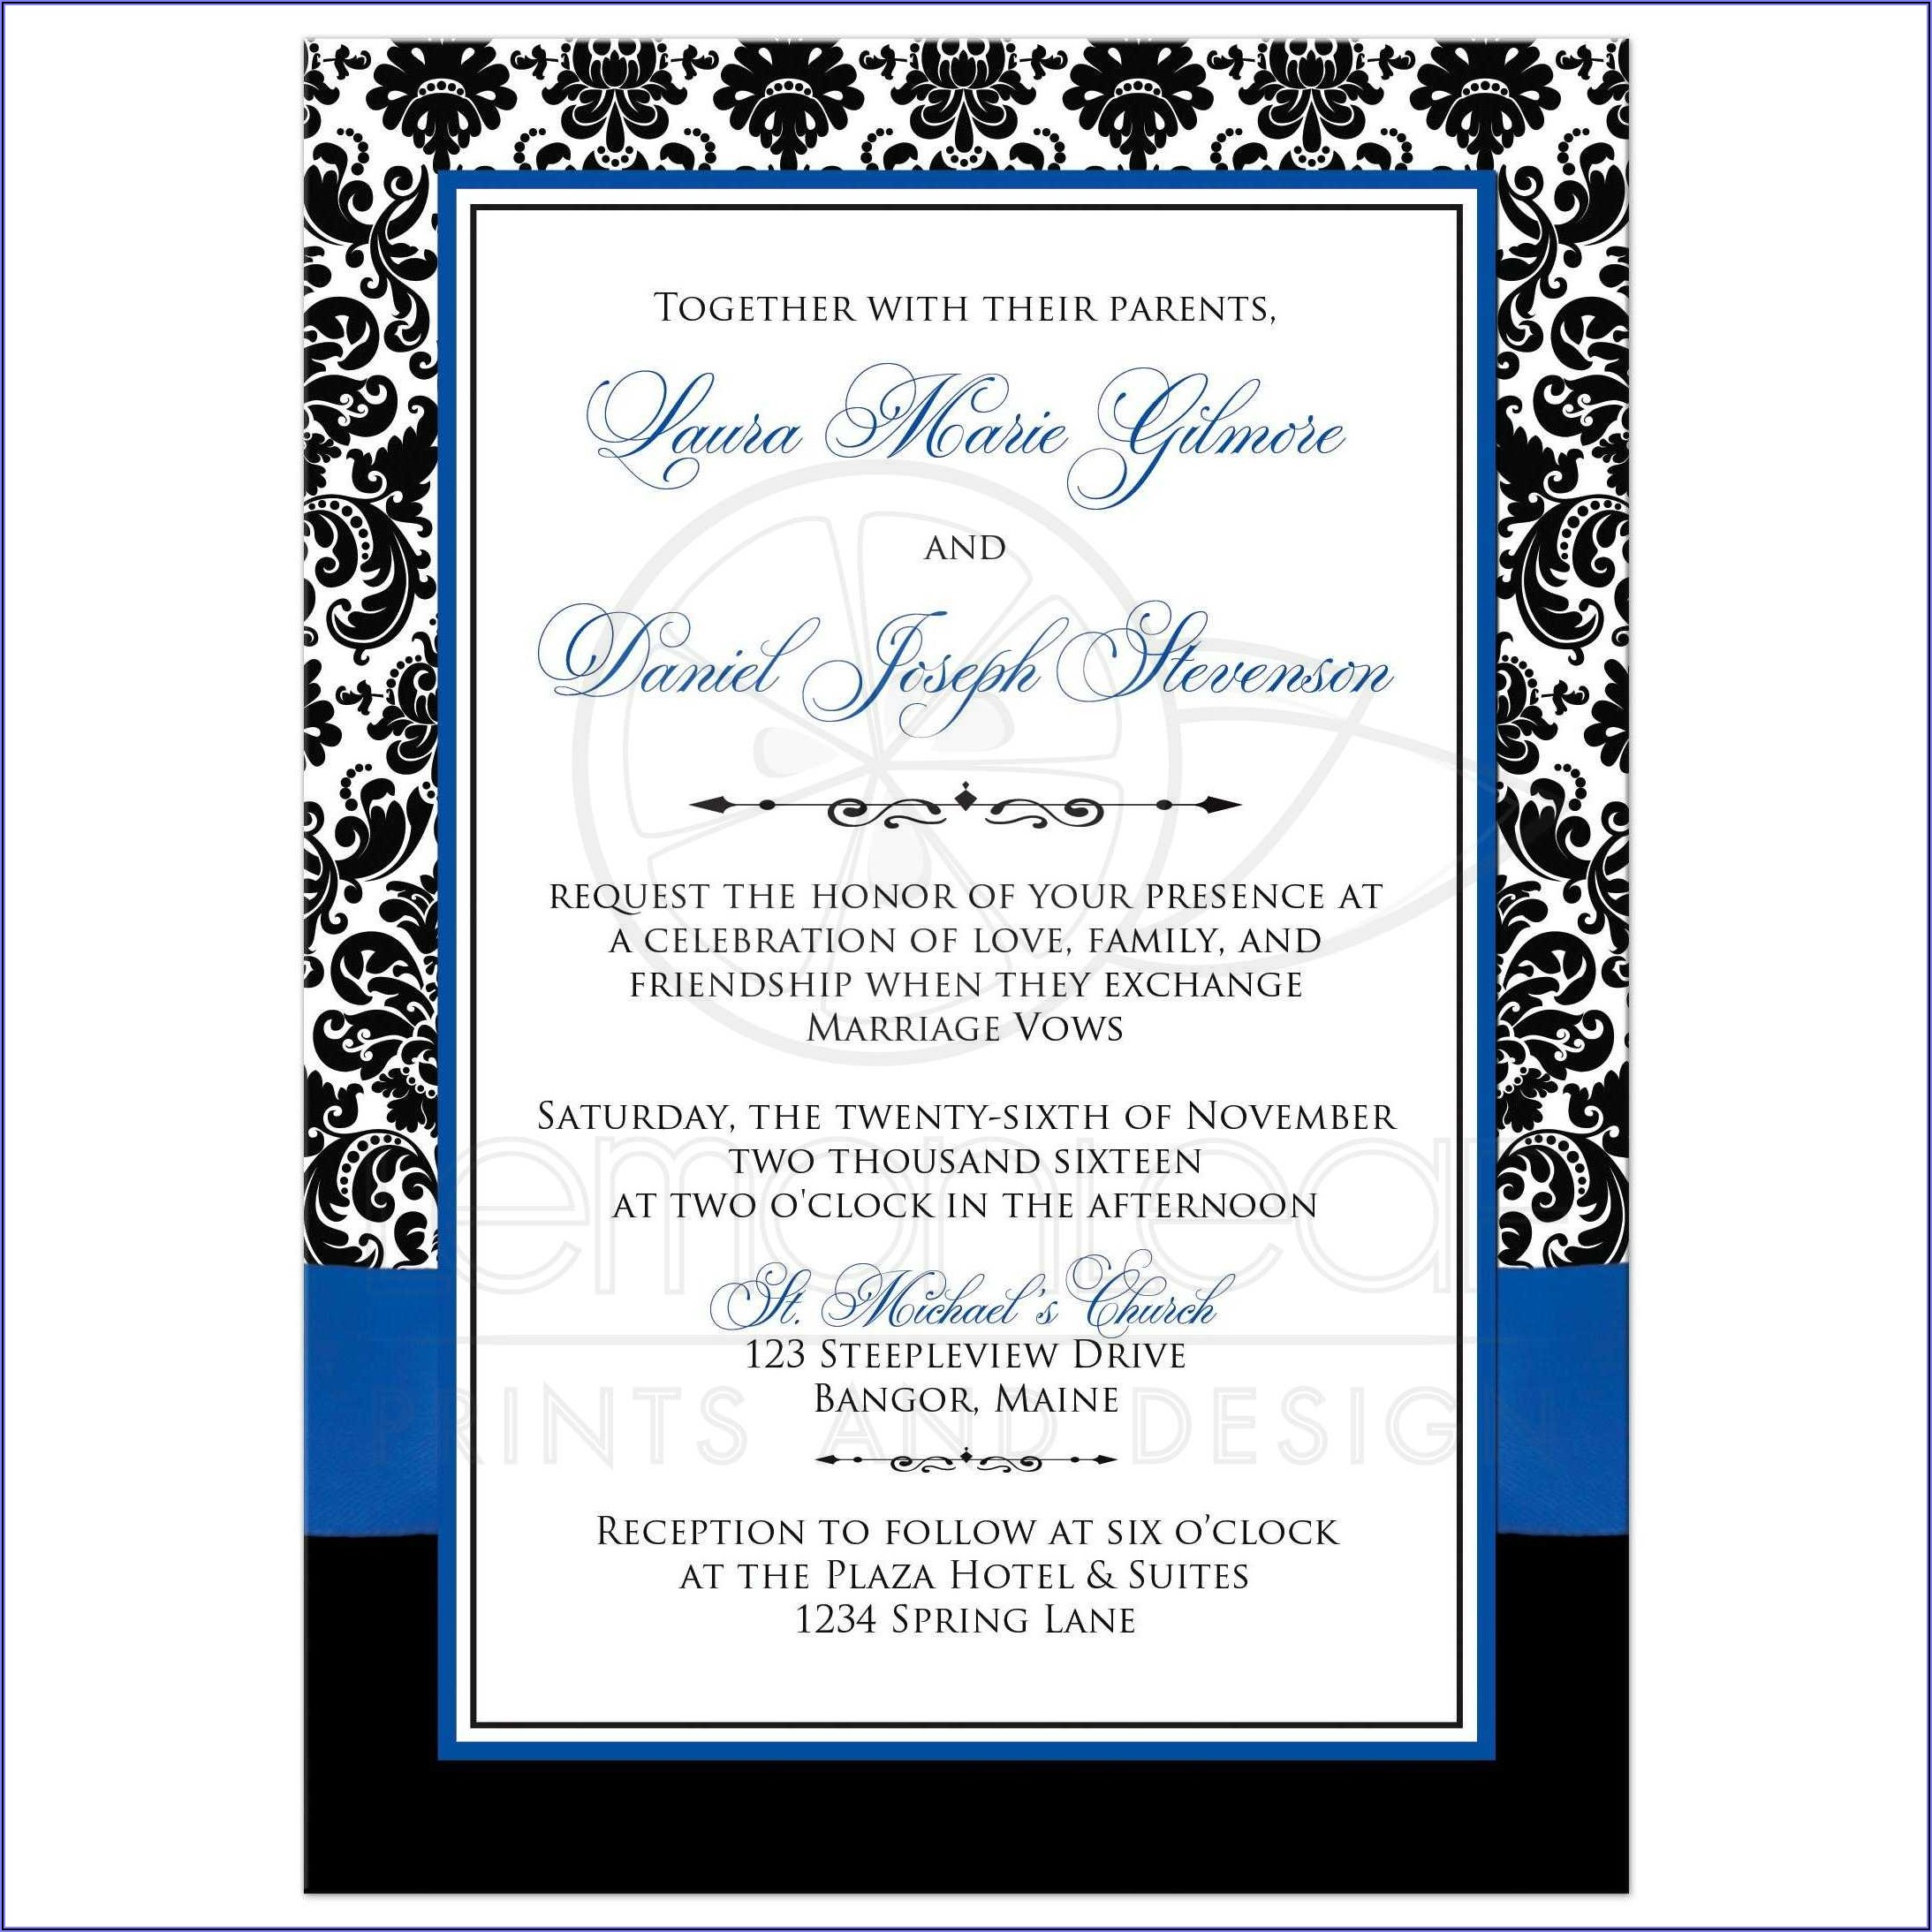 Royal Blue Wedding Invitation Sample